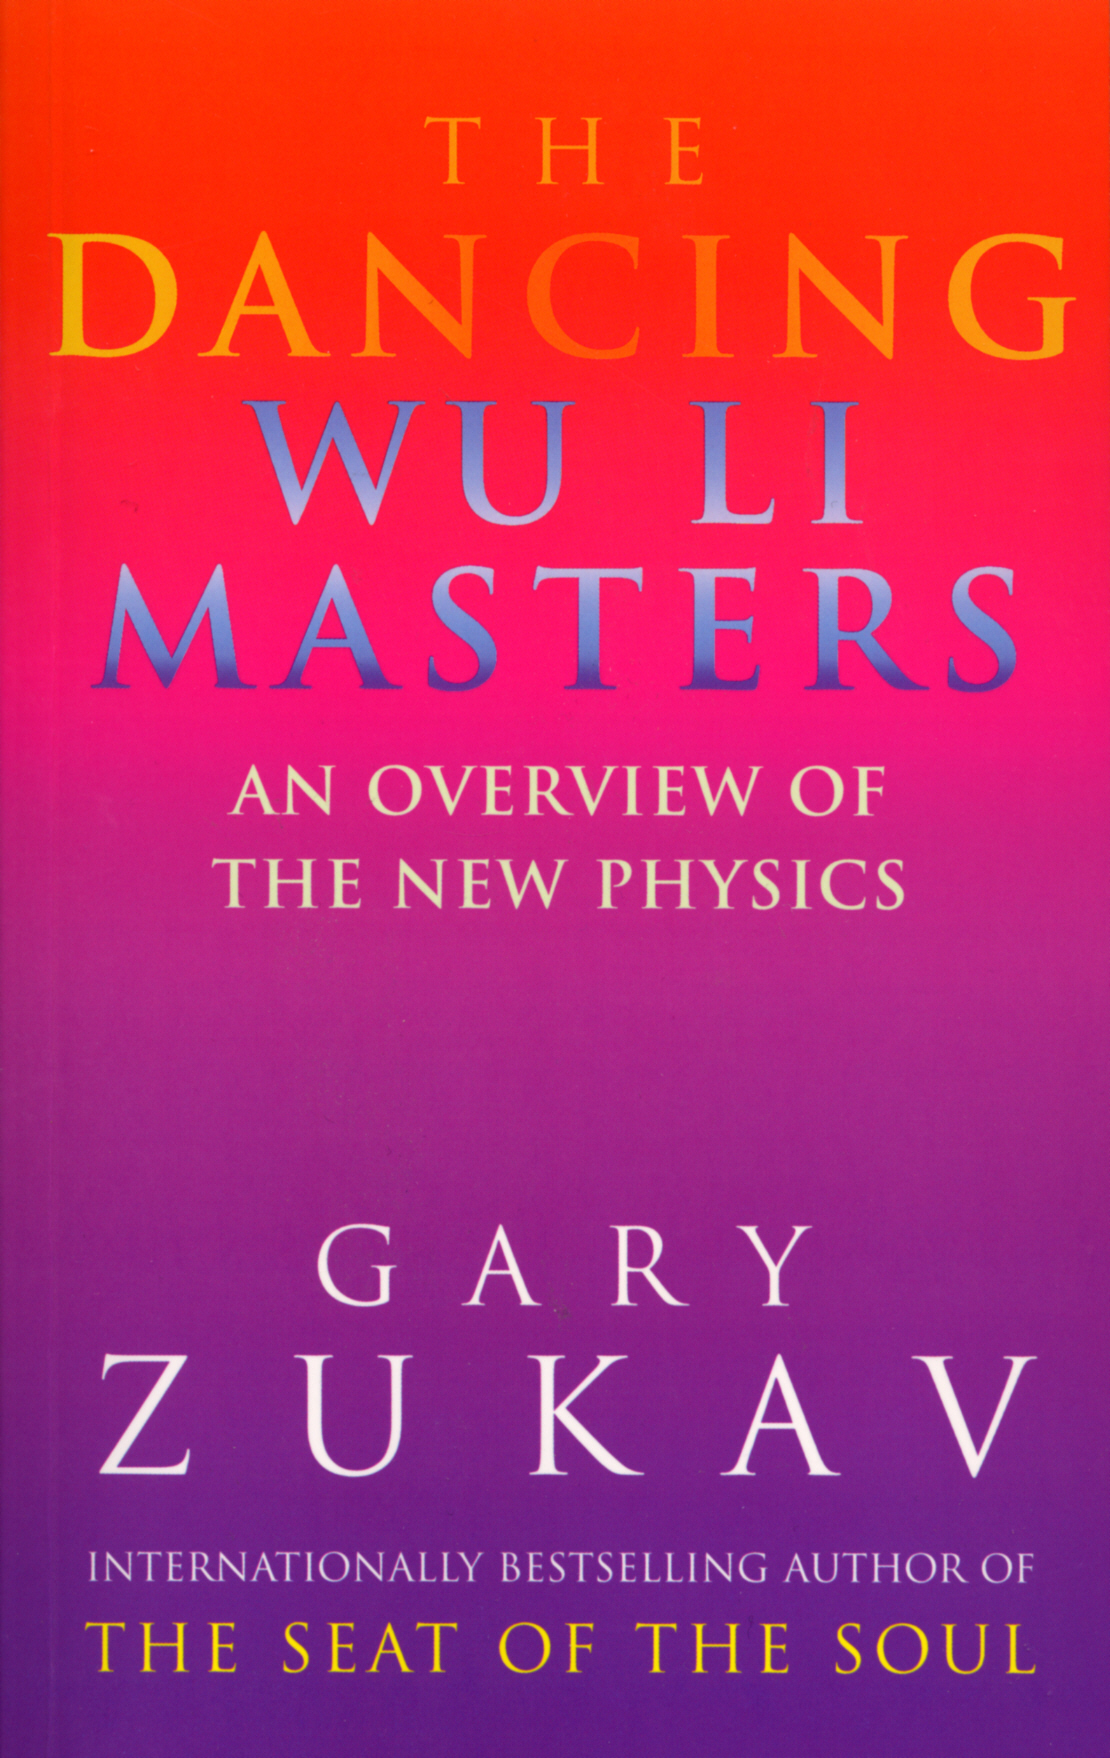 The Dancing Wu Li Masters An Overview of the New Physics